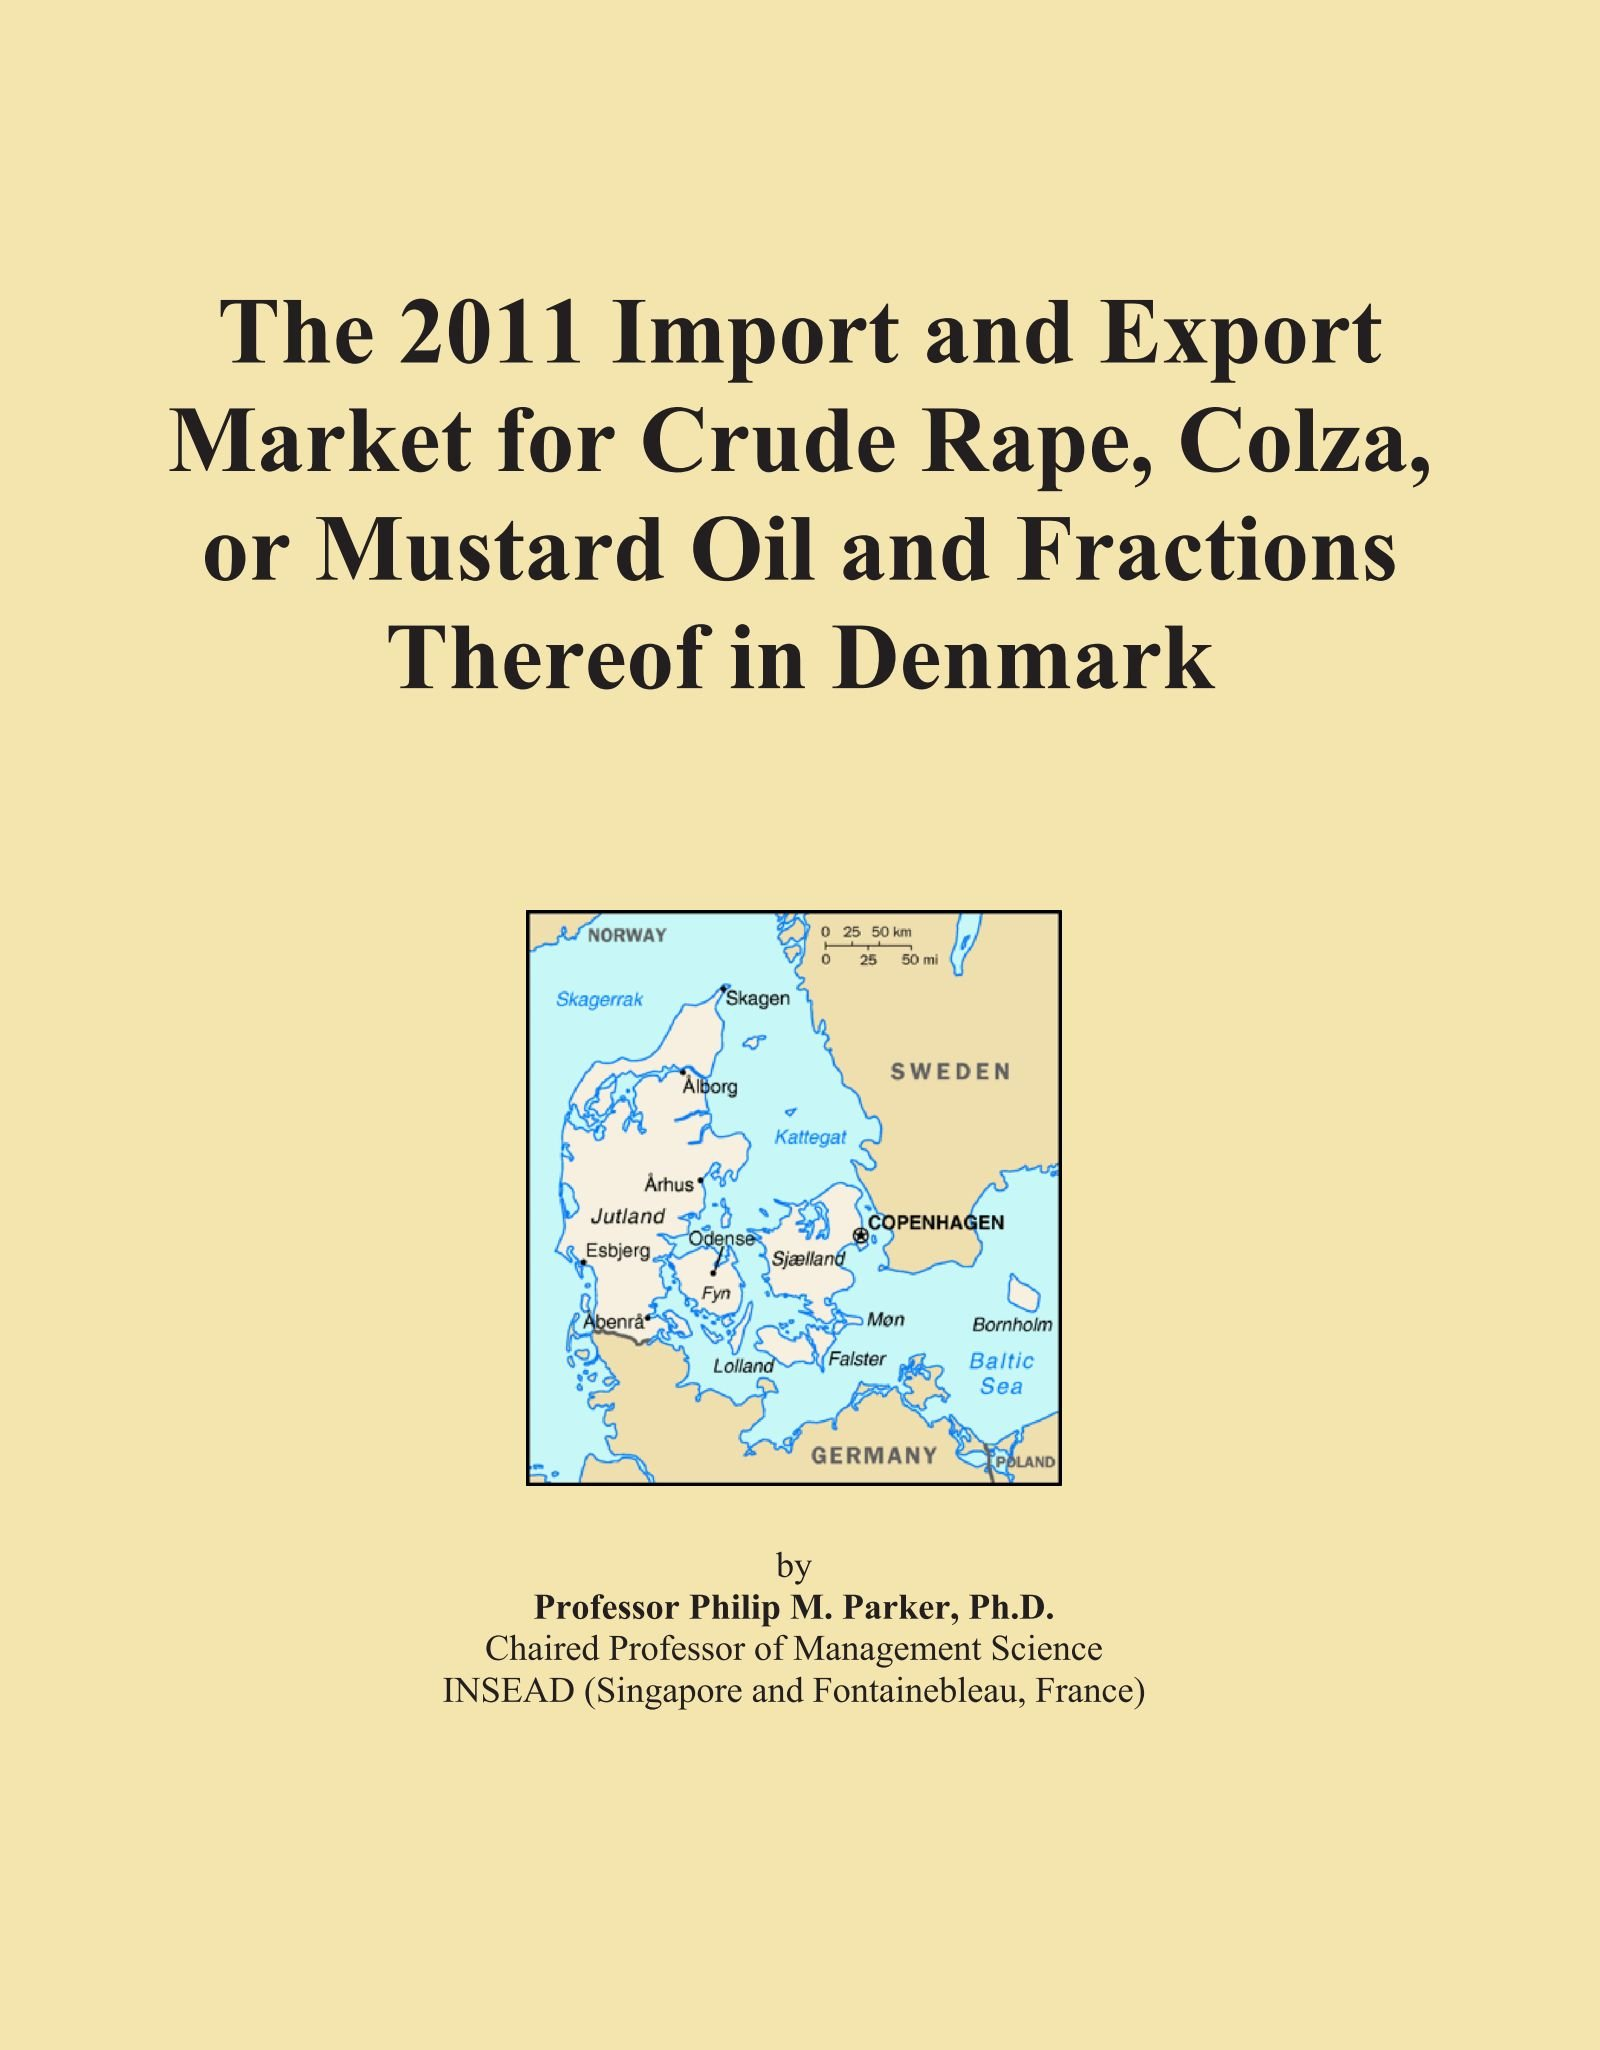 The 2011 Import and Export Market for Crude Rape, Colza, or Mustard Oil and Fractions Thereof in Denmark pdf